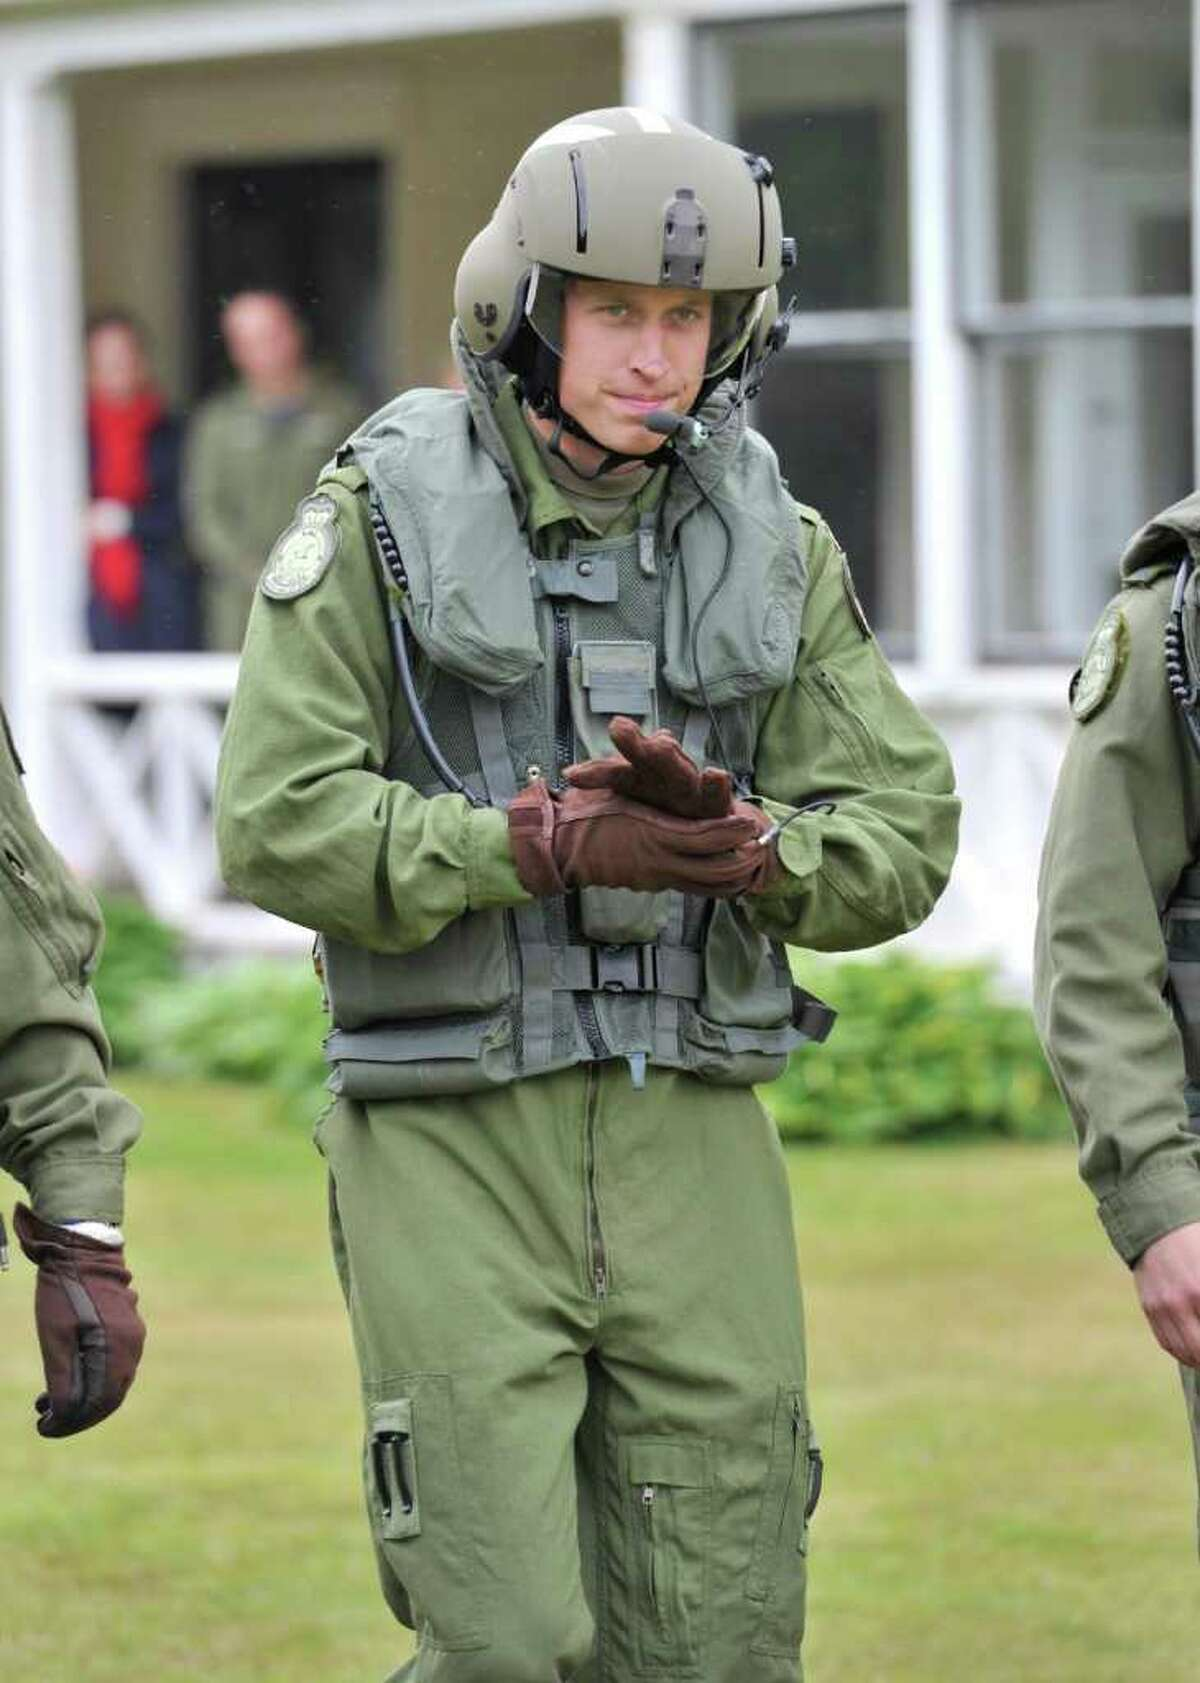 Prince William, The Duke of Cambridge, heads toward a Sea King helicopter for a training exercise, in Dalvay by-the-Sea, Prince Edward Island, Monday, July 4, 2011. Prince William will pilot a Canadian military helicopter and land it on the water for the first time as part of a military emergency training exercise. READ THE STORY